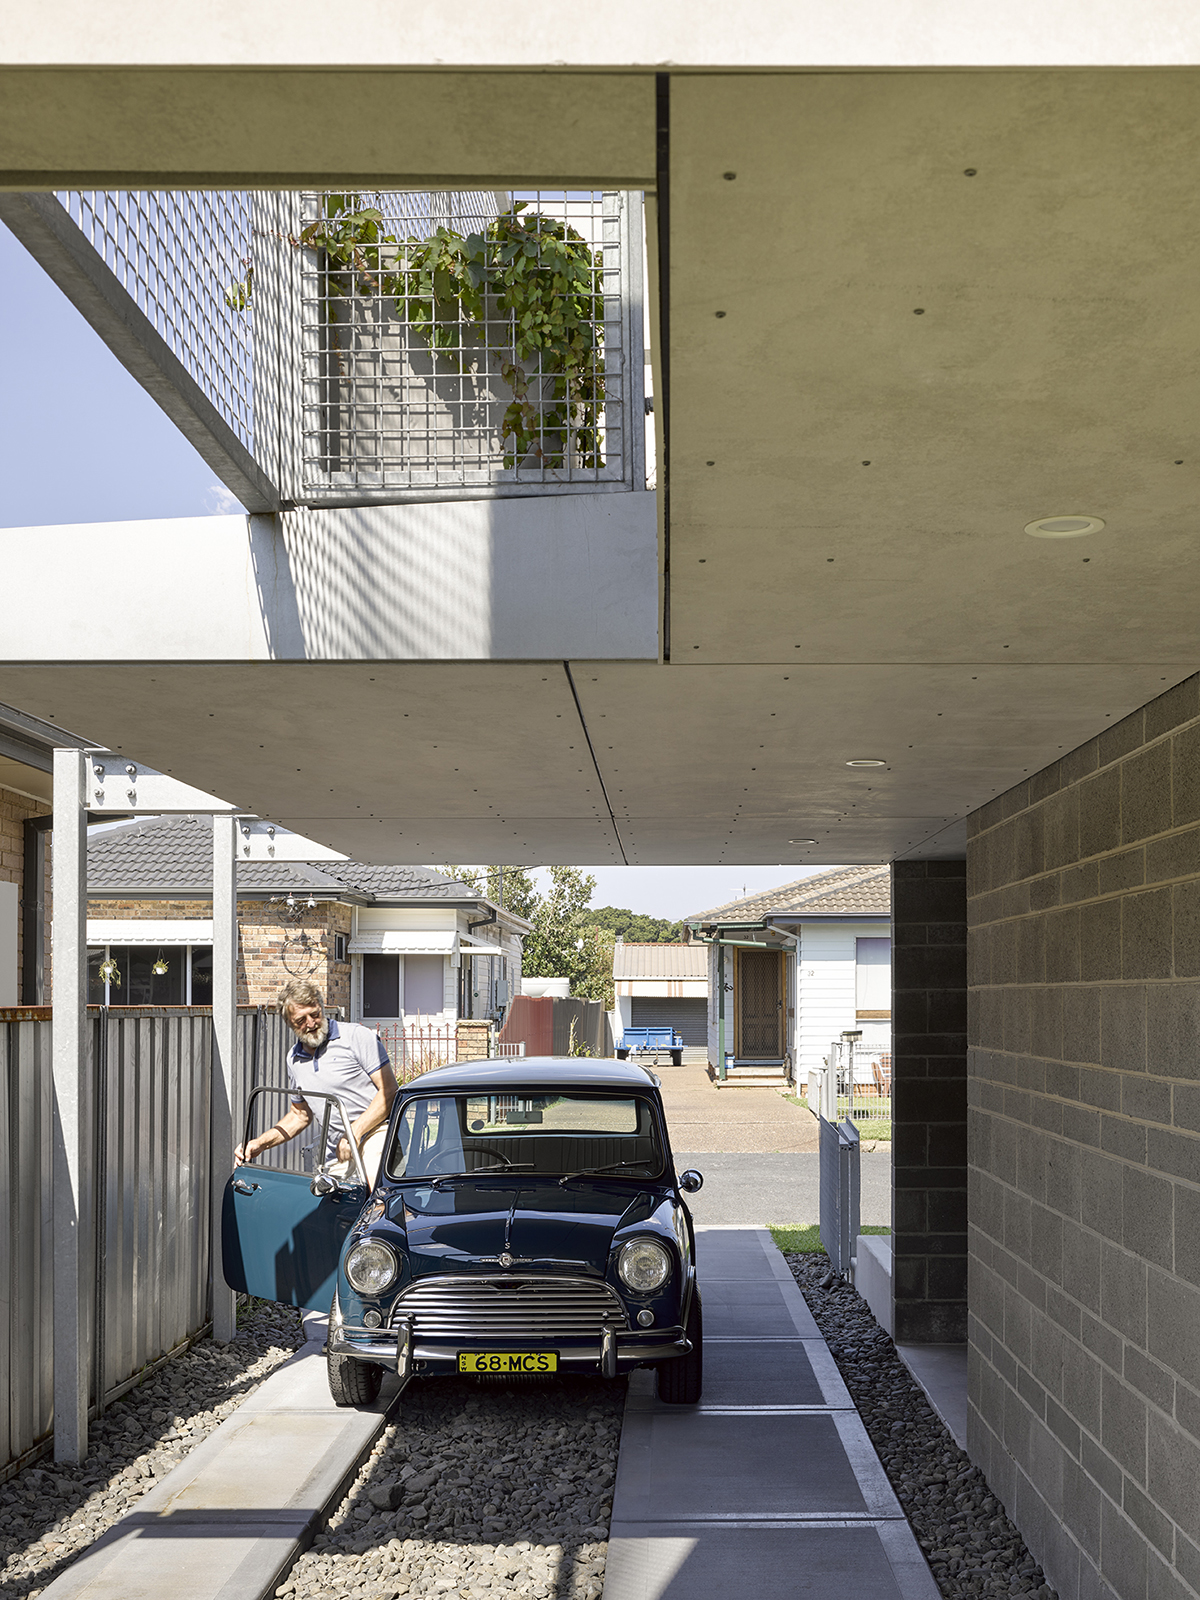 Image Of A Mini In A Carport With Light From Above And Planter Box Overhead.